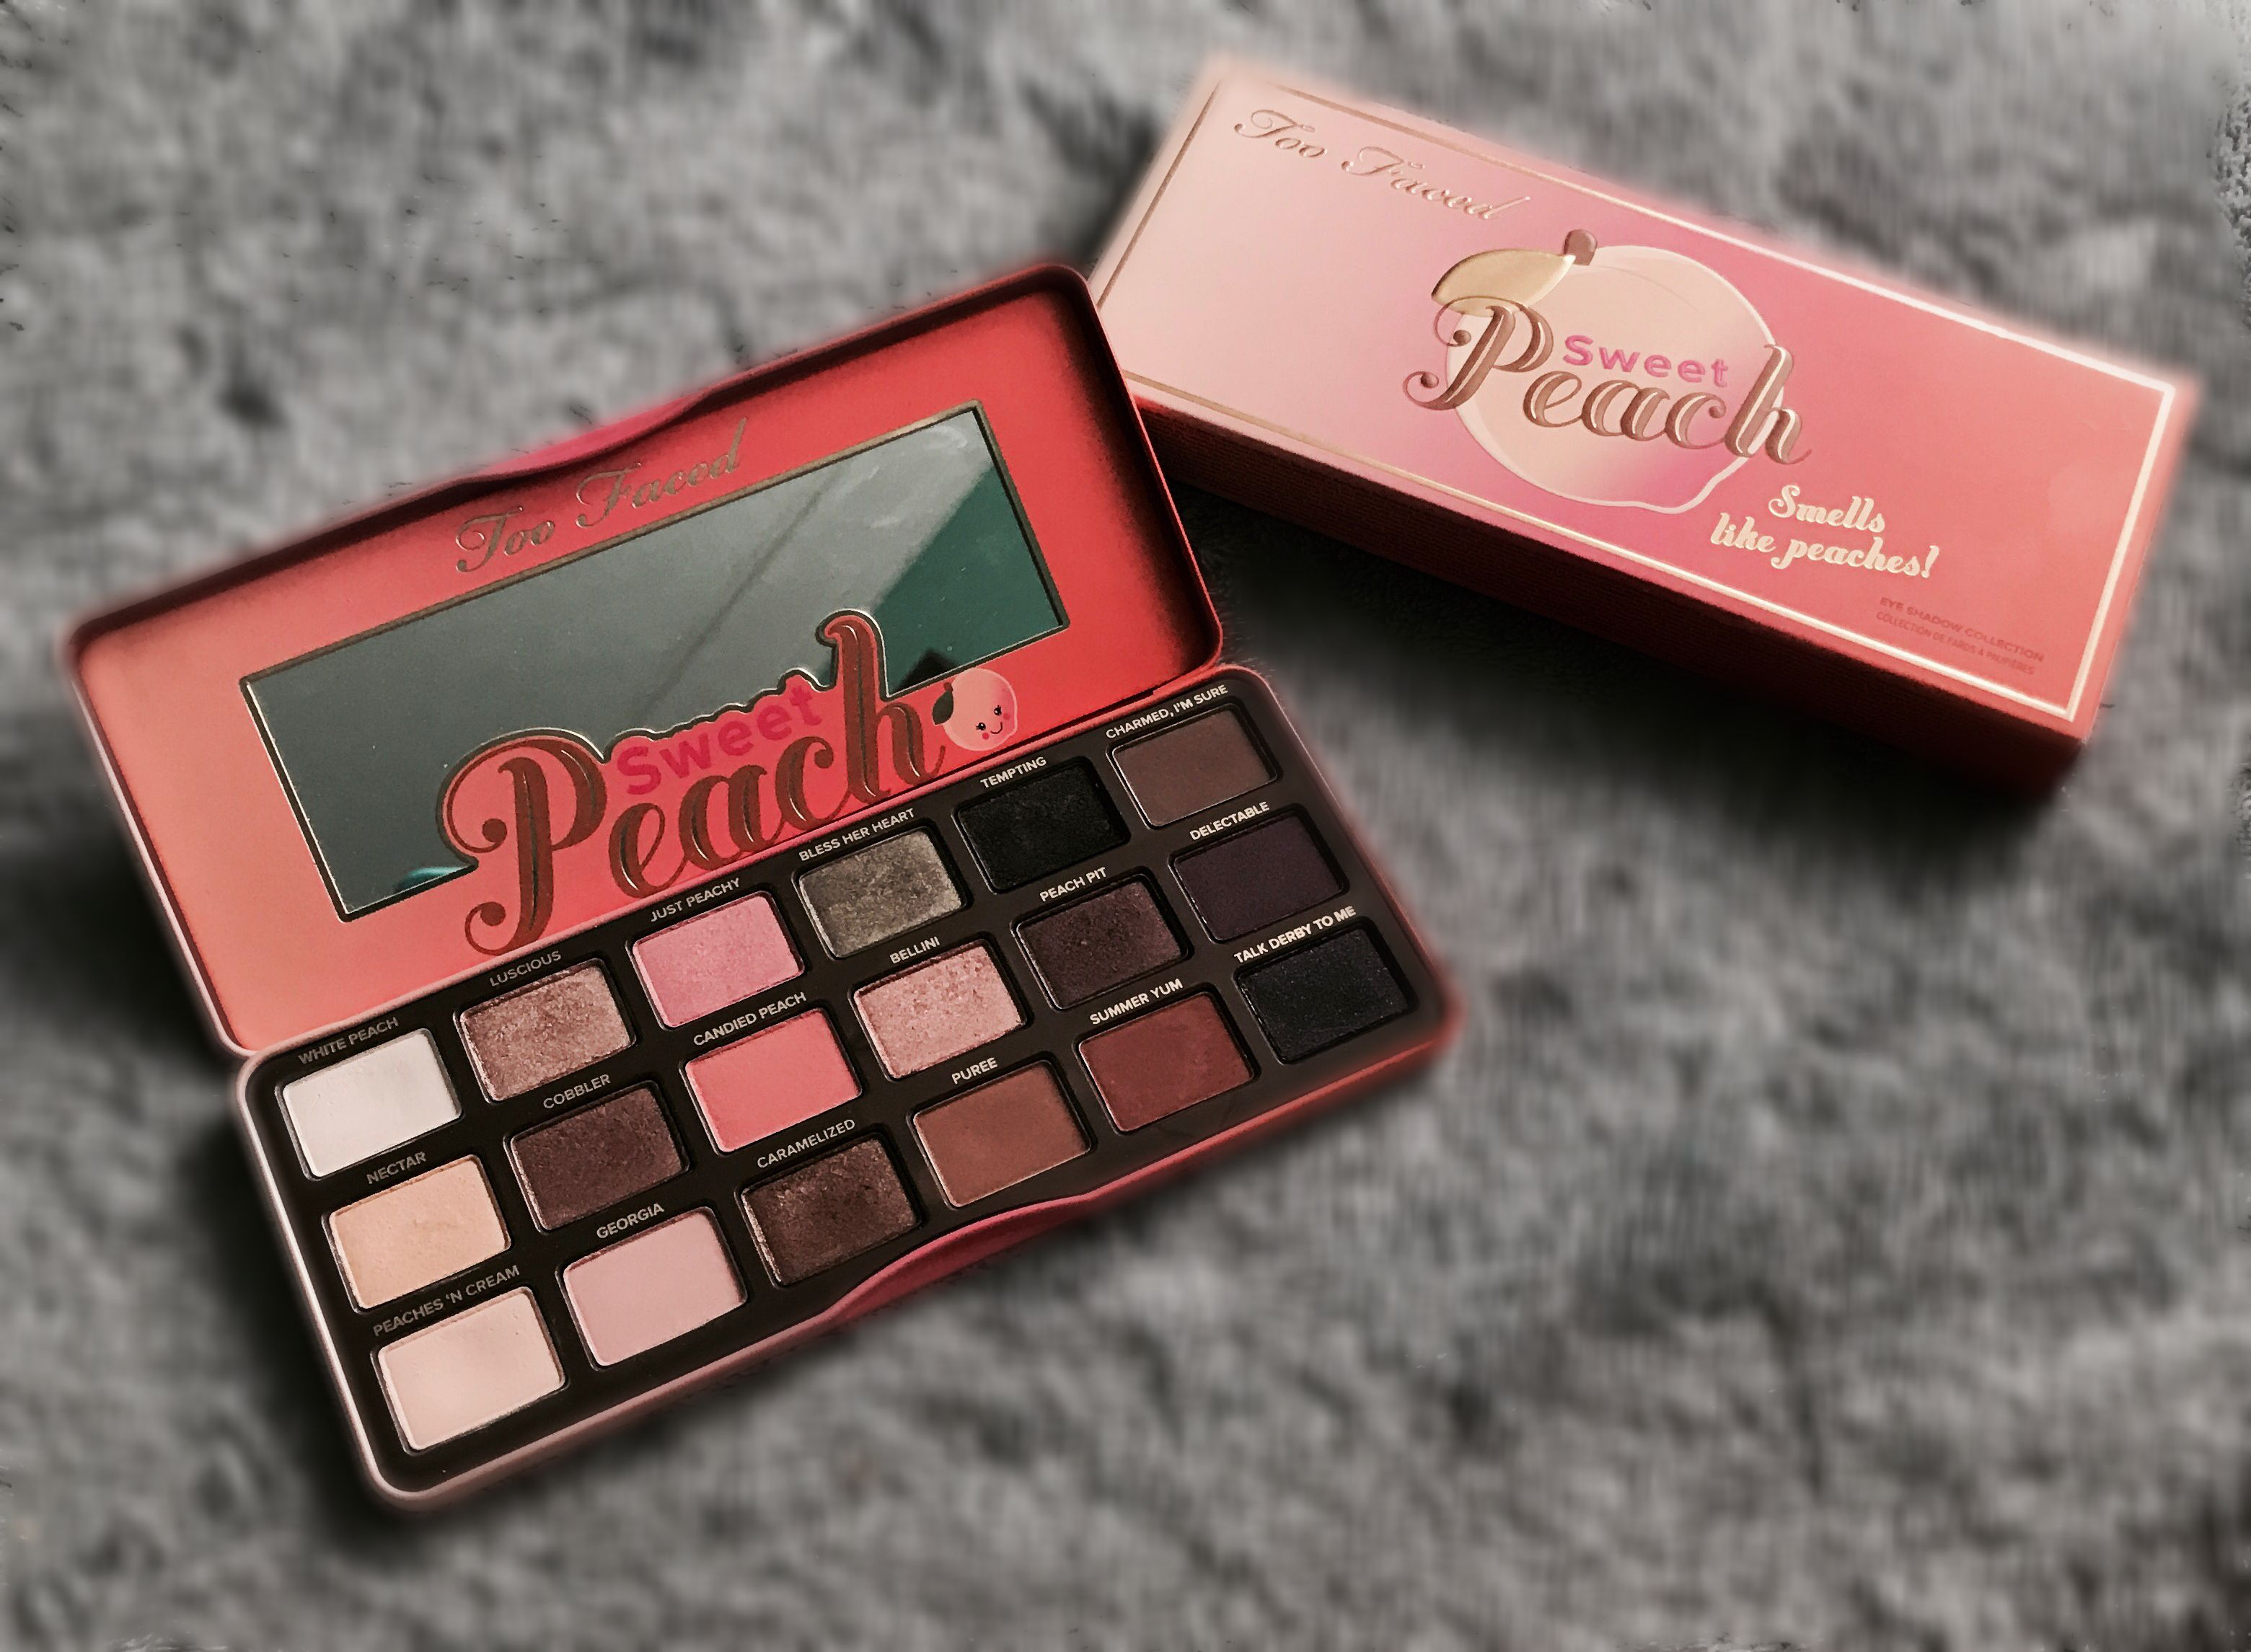 Too faced sweet peach pallet😍 Instagram extra_olivia